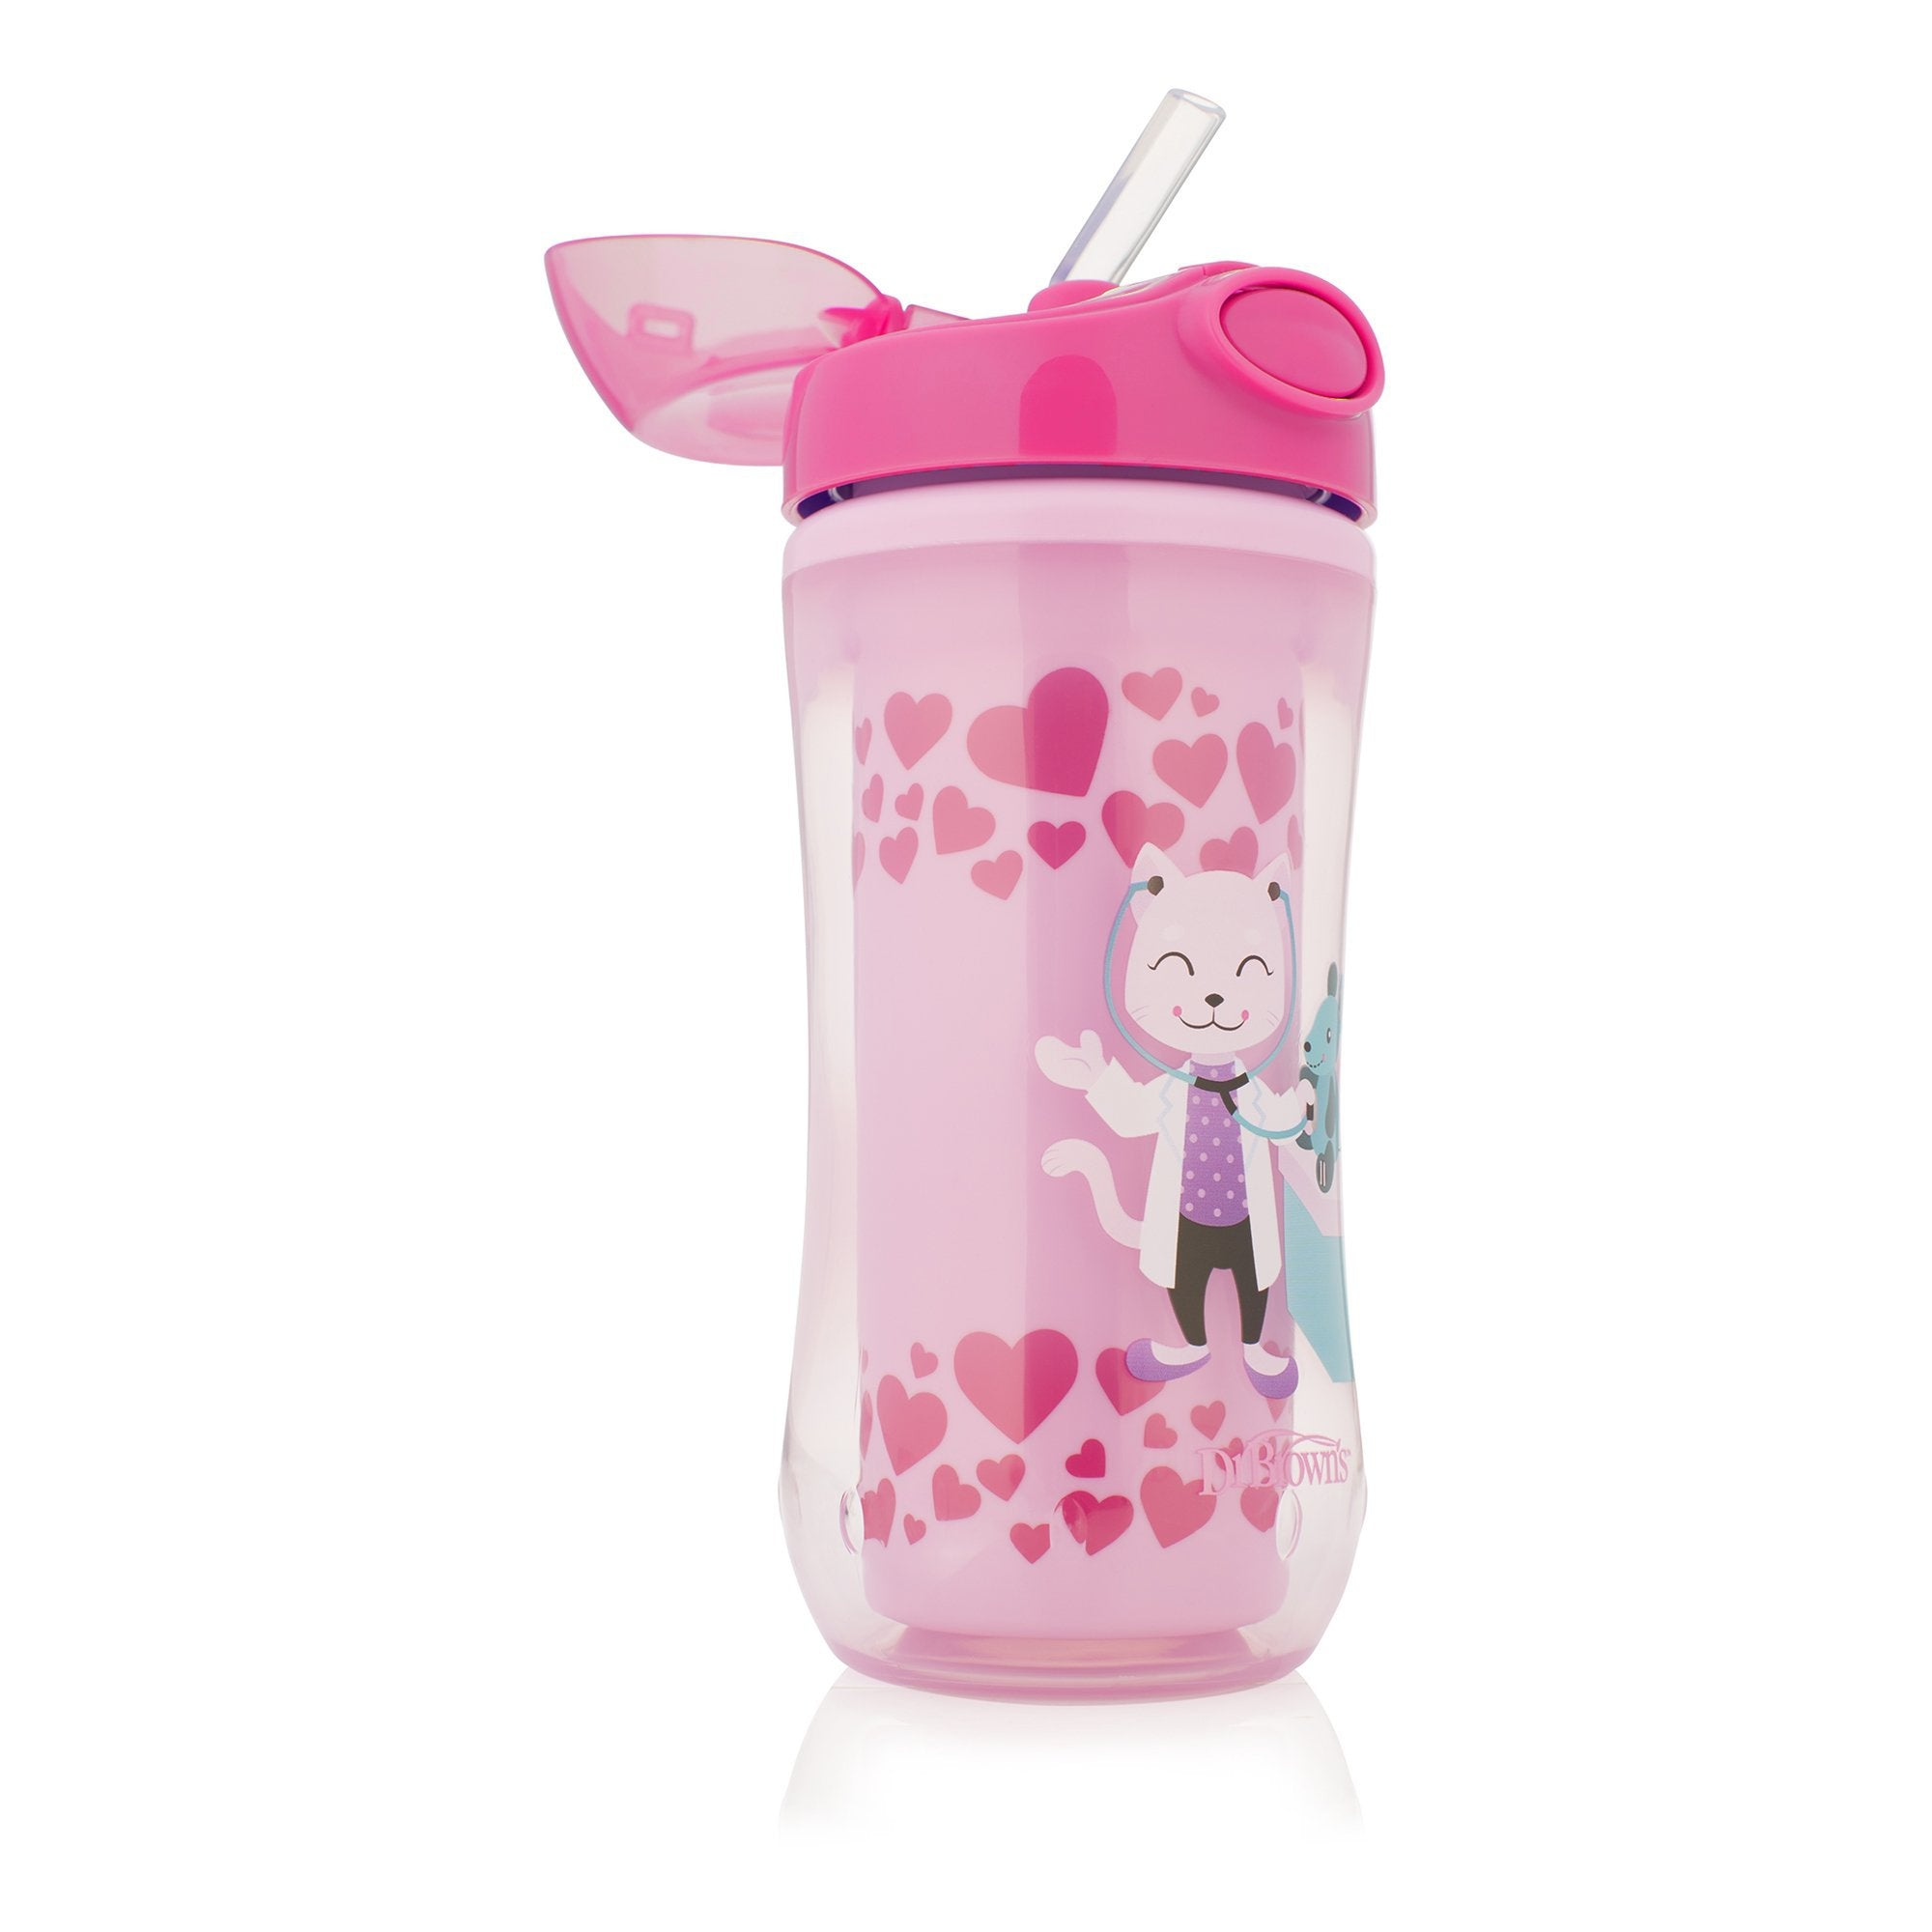 Dr. Brown's 300ml Insulated Straw Cup- (12m+)-Cups-Mother and Baby Shop Kenya's #1 Online Baby Shop